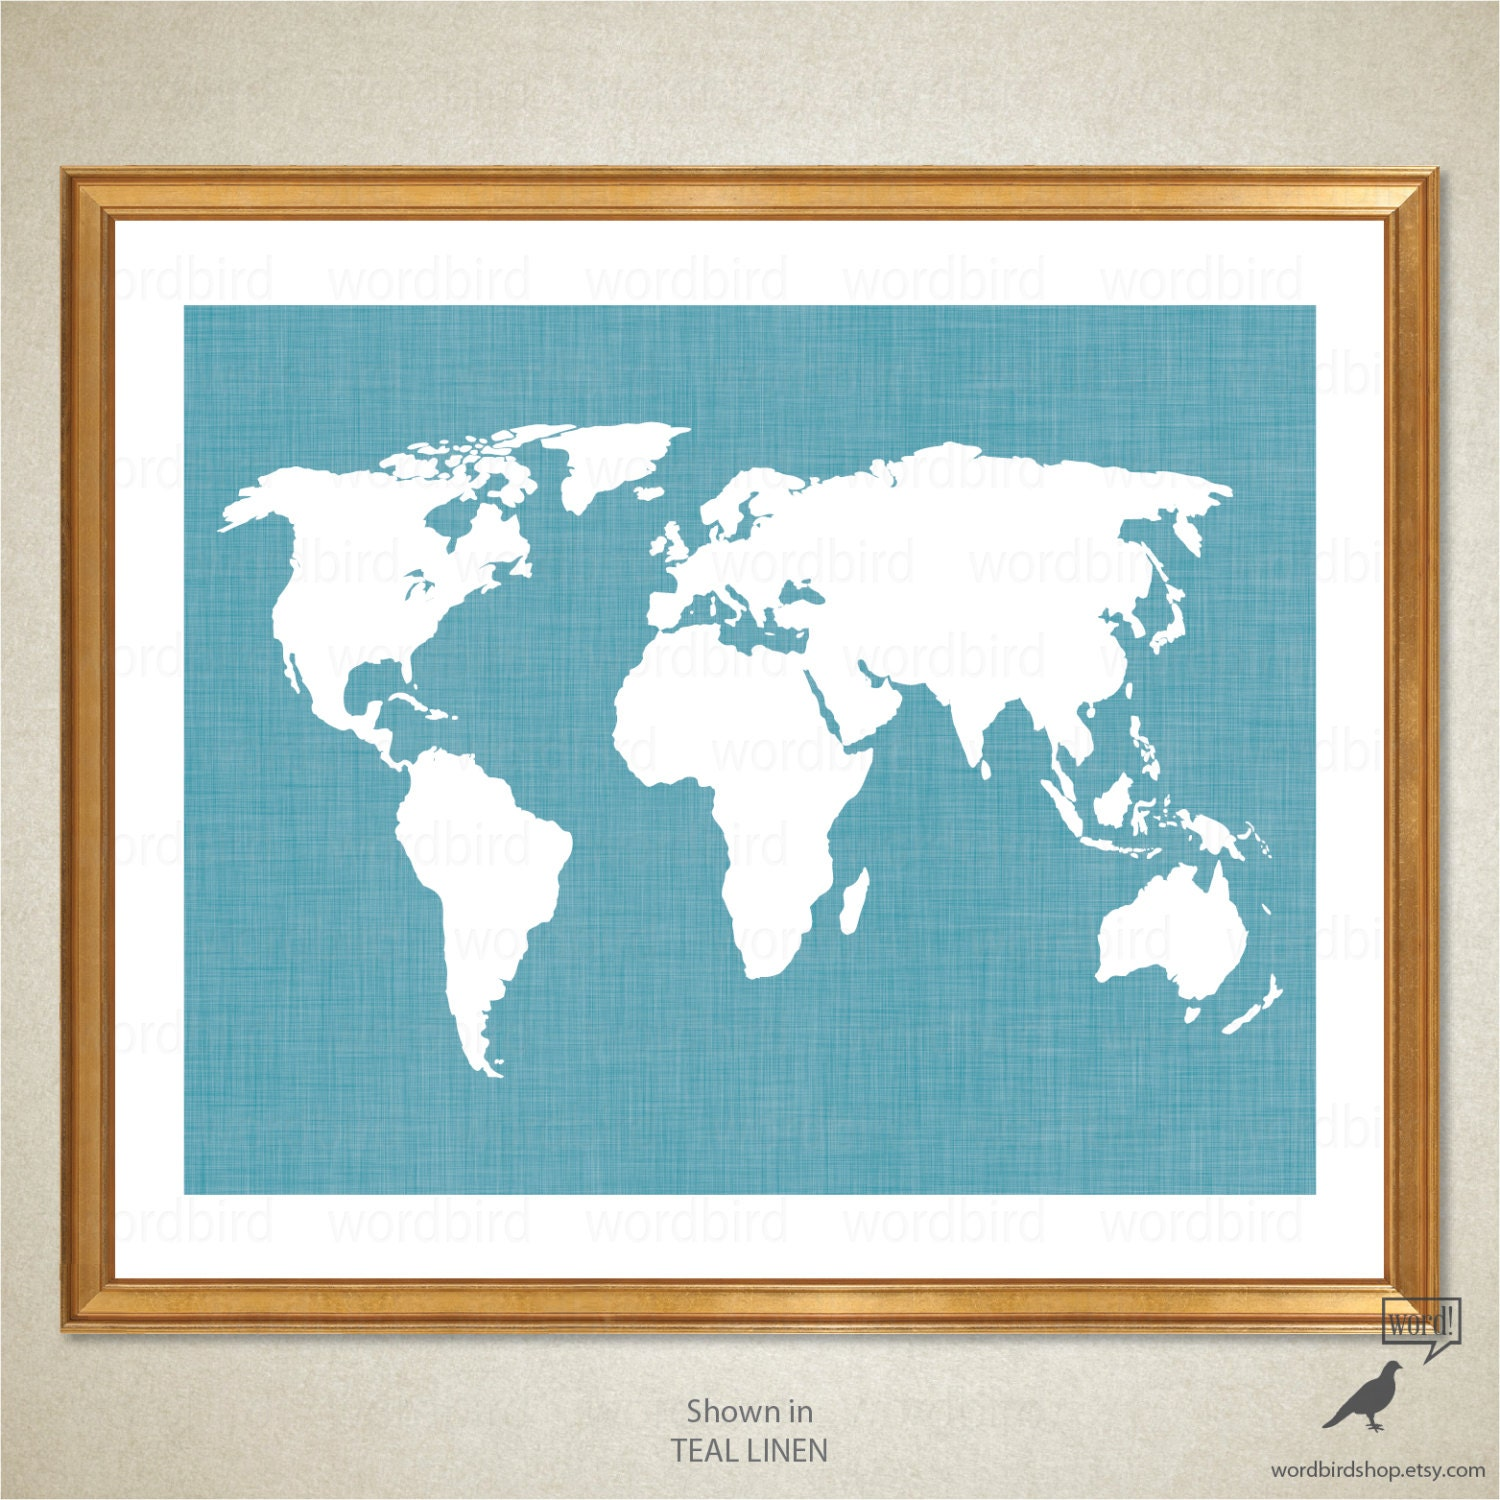 Teal World Map World Map Wall Decor Chic Bedroom By